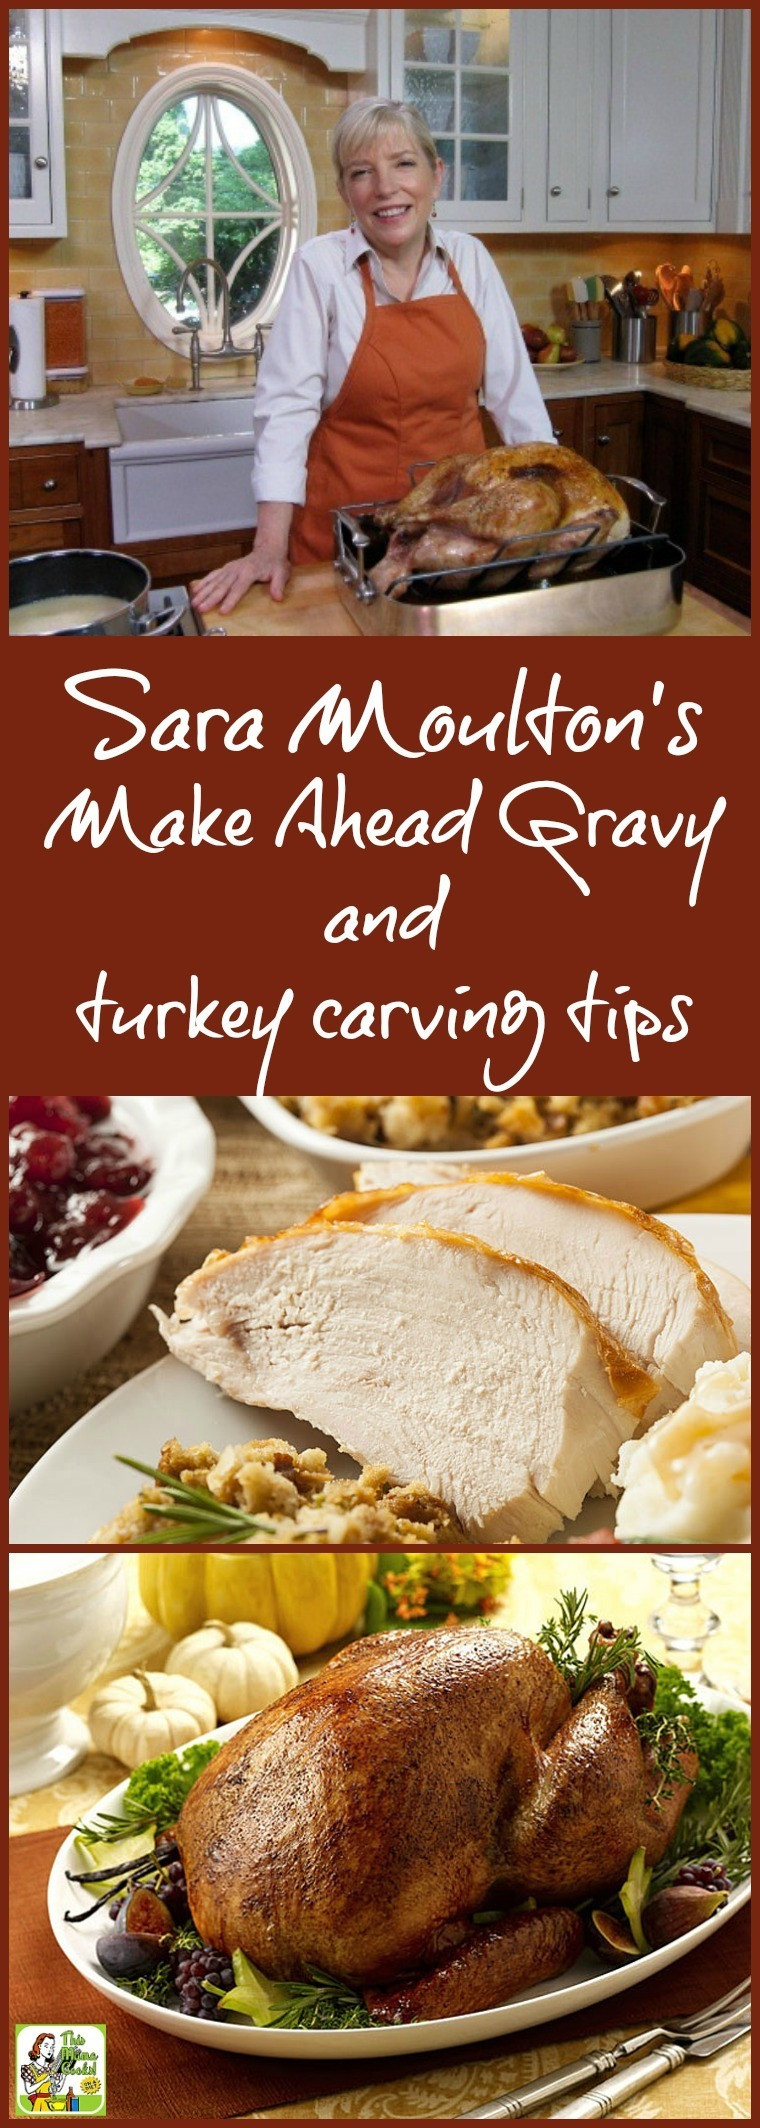 Make Ahead Gravy For Thanksgiving  Sara Moulton s Make Ahead Gravy and turkey carving tips